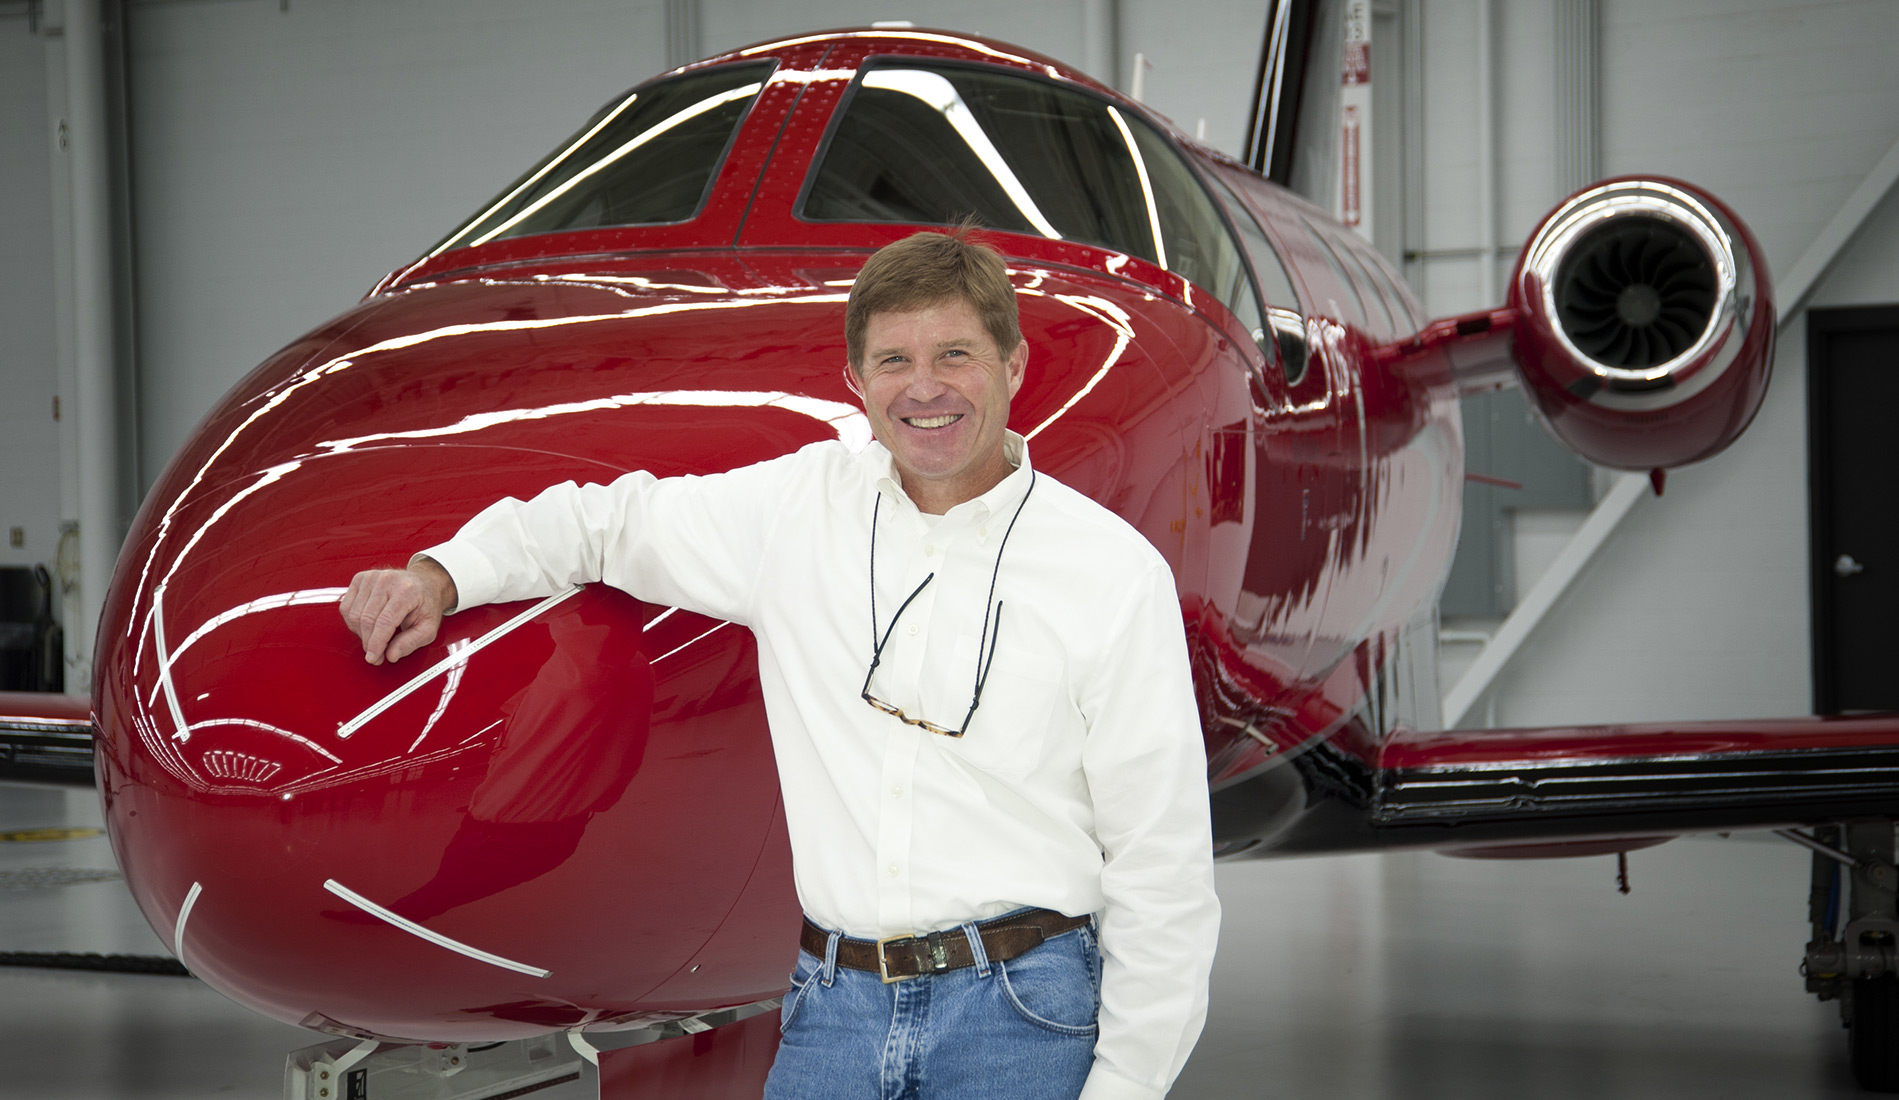 McVean with his Citation M2